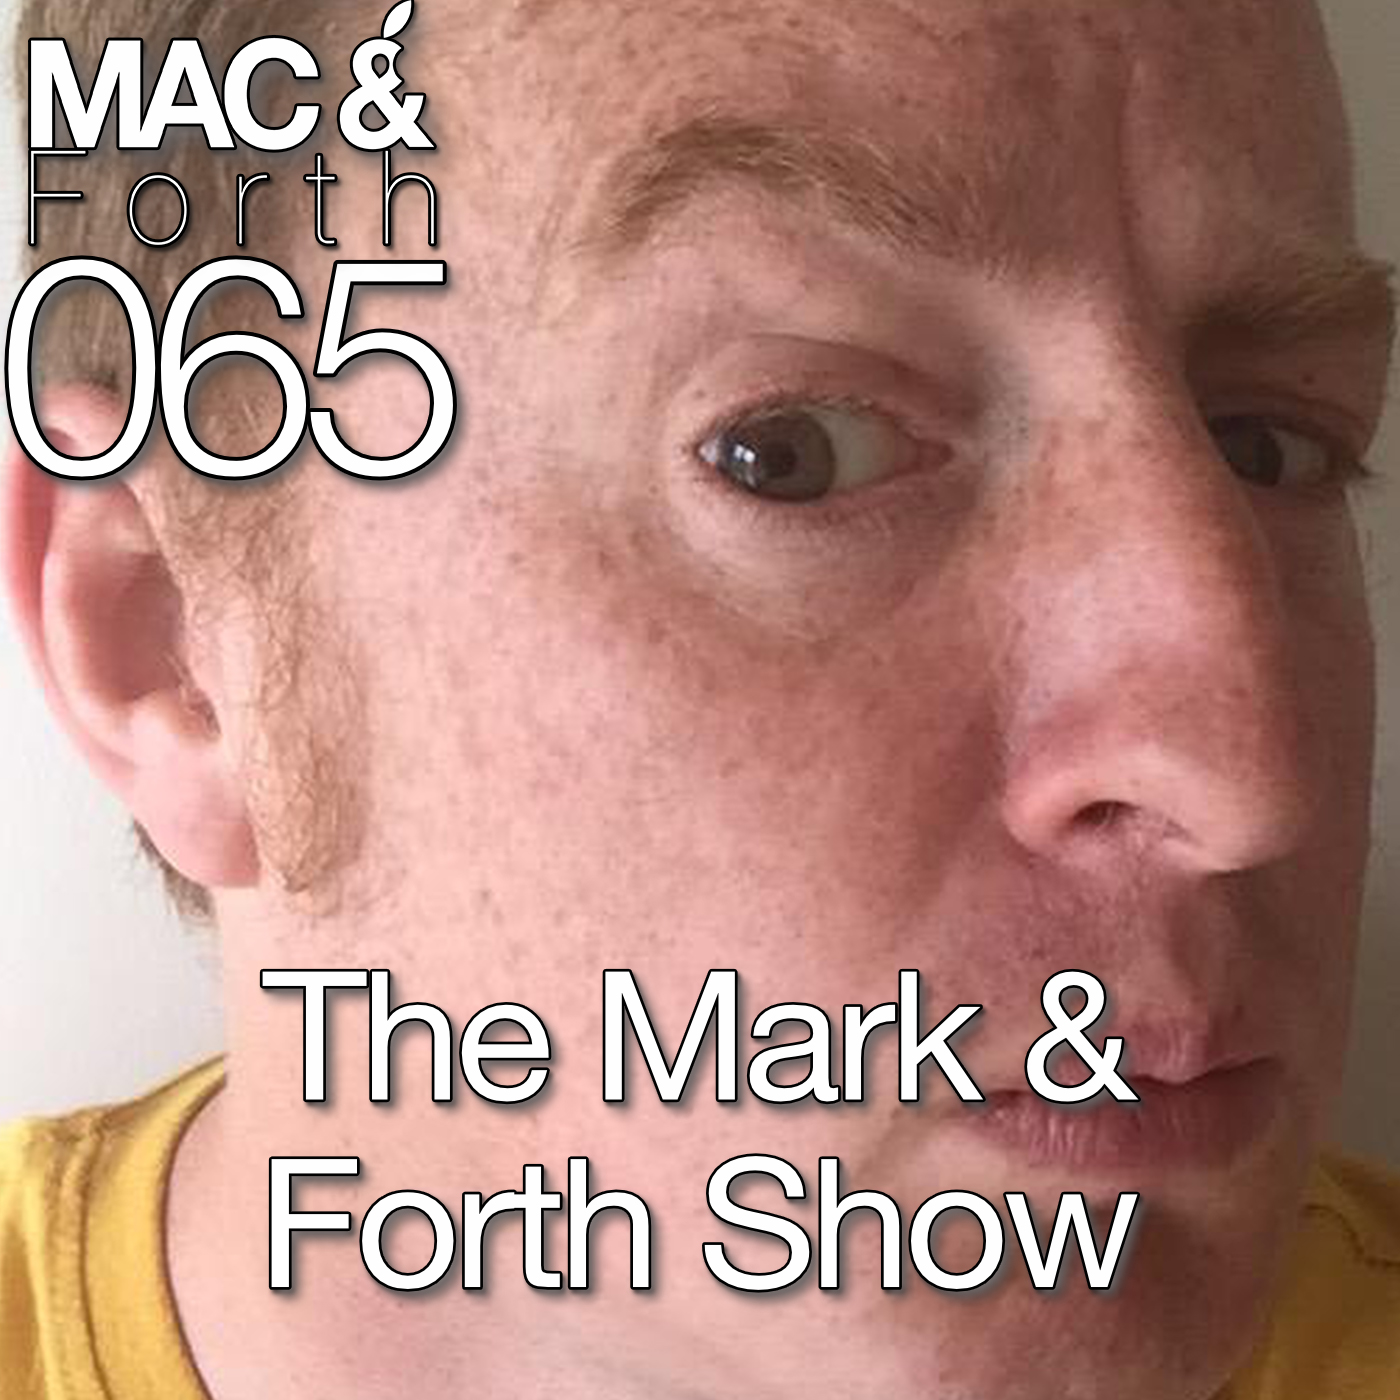 The Mac & Forth Show 065 - The Mark & Forth Show